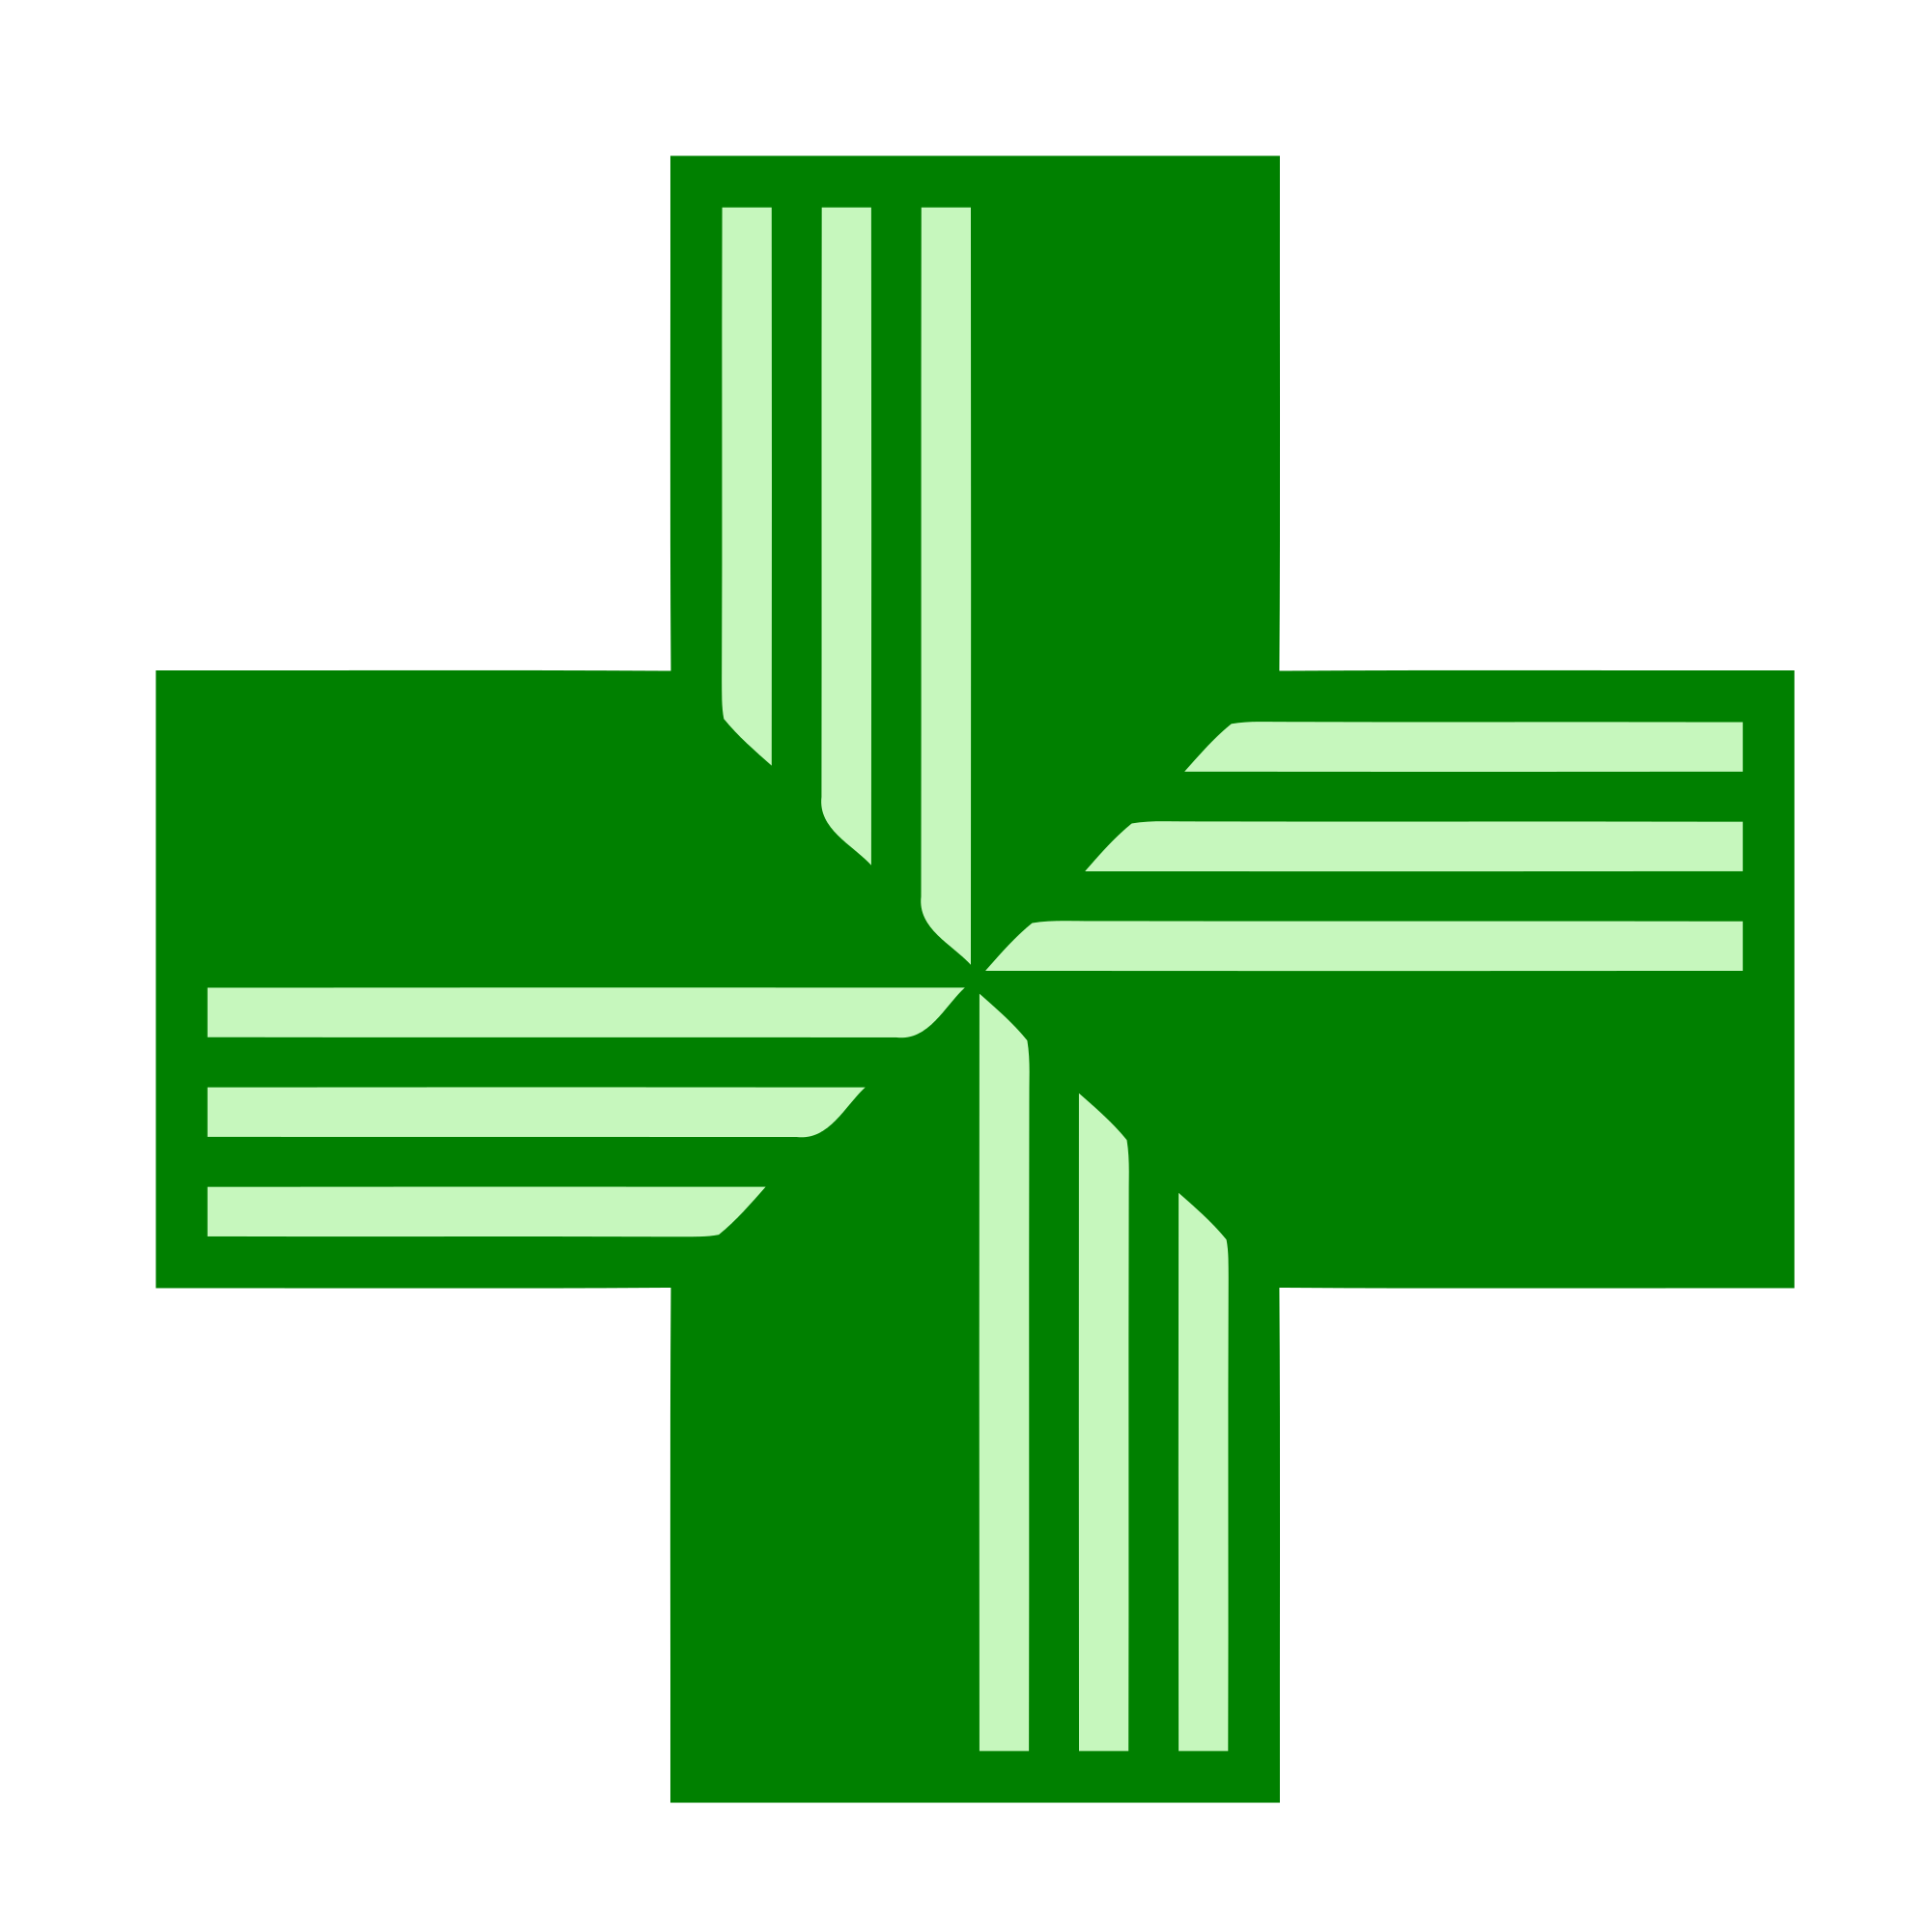 File:Pharmacy Green Cross.svg